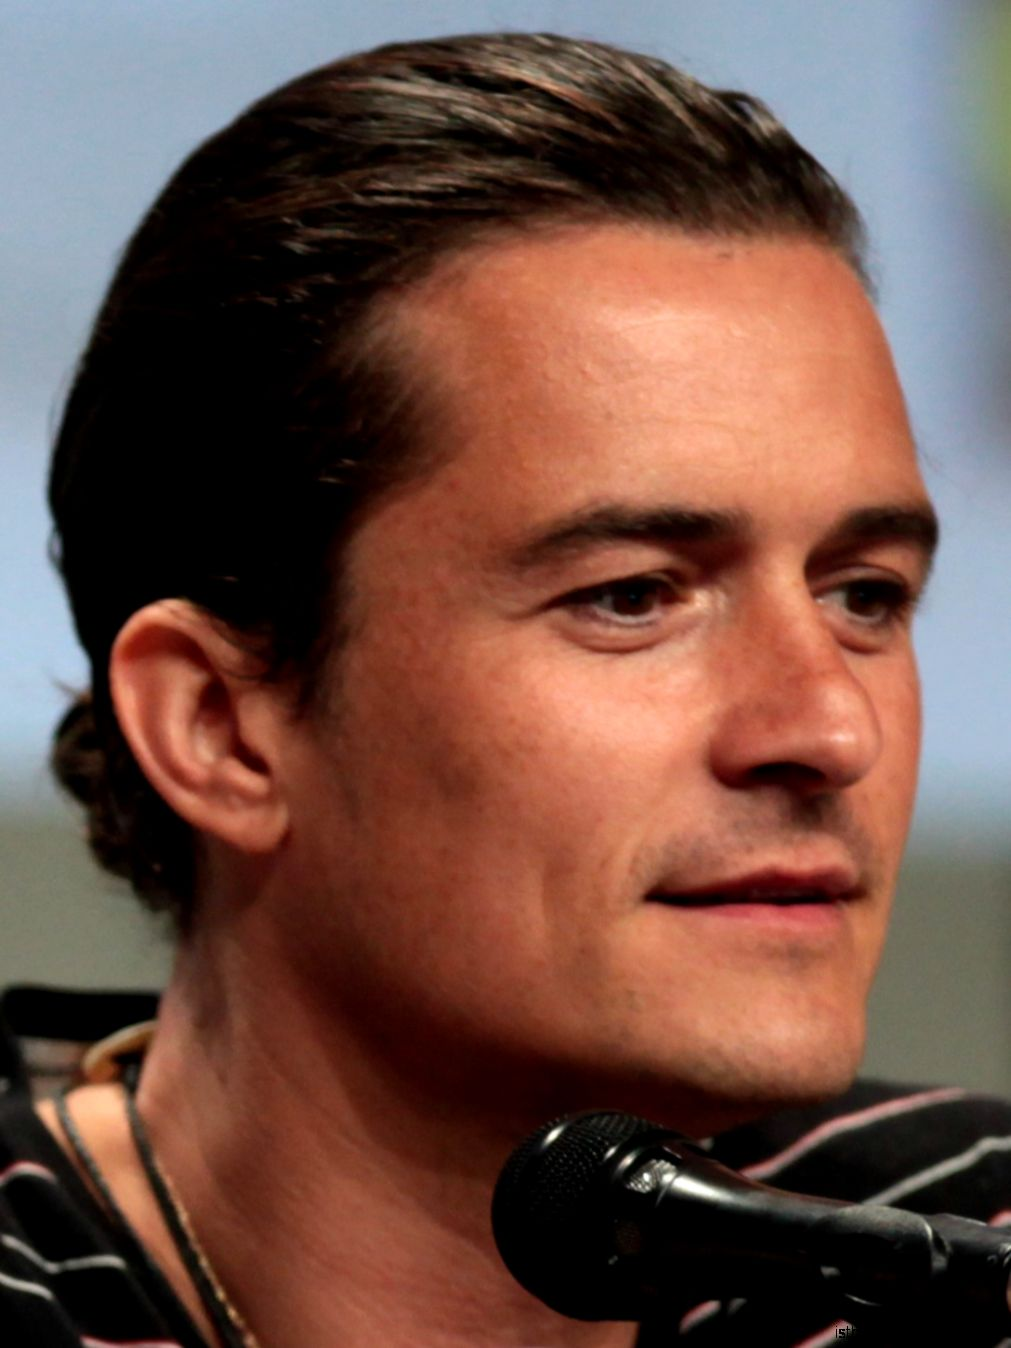 Orlando Bloom   Wikipedia the free encyclopedia